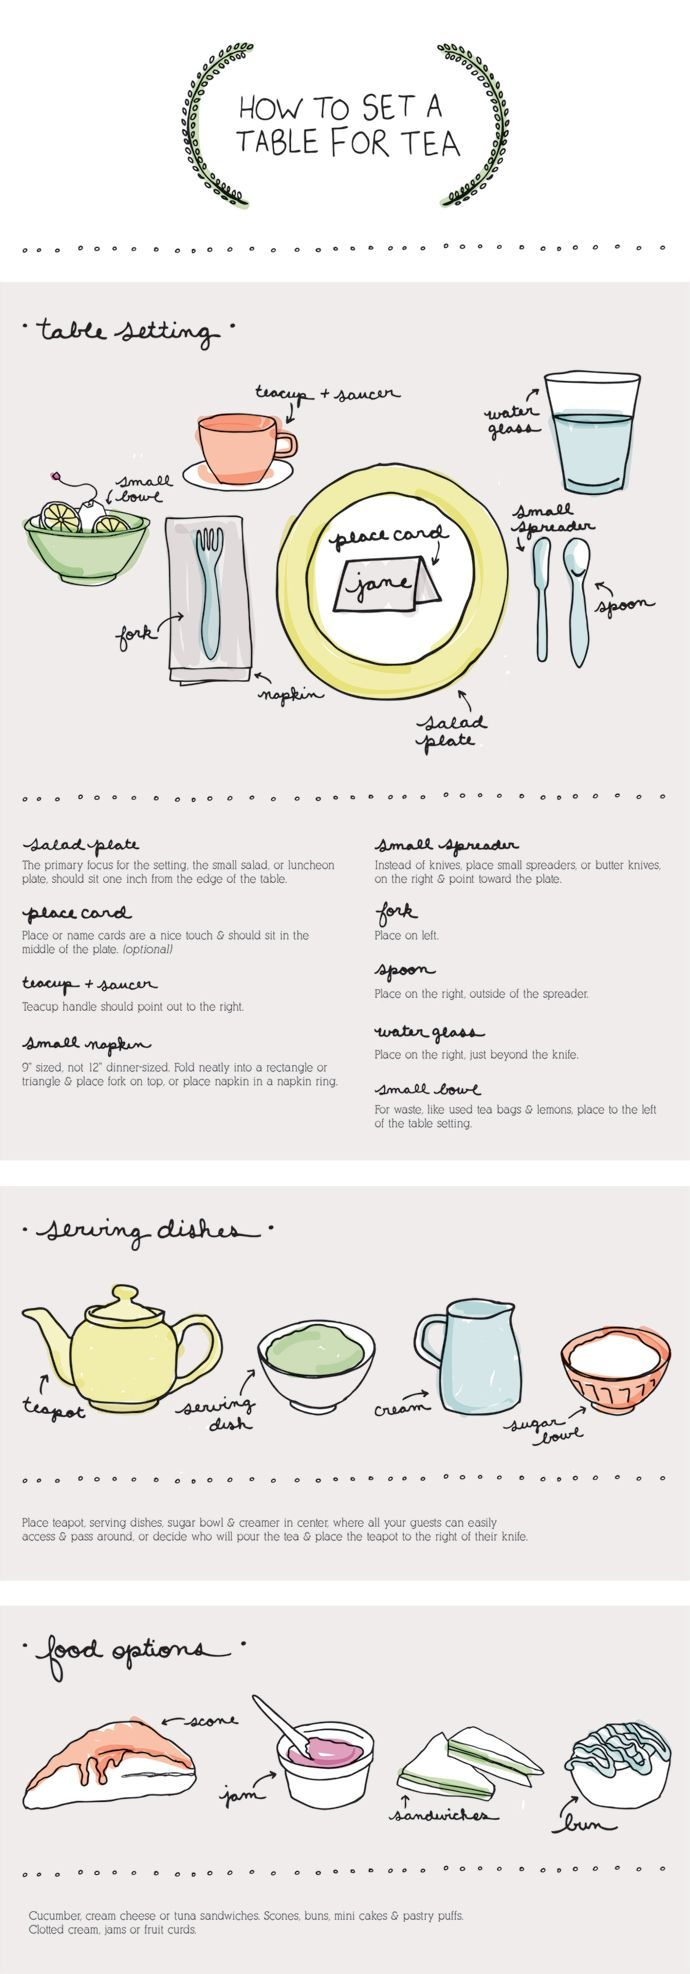 How to set a table for tea! GREAT infographic!